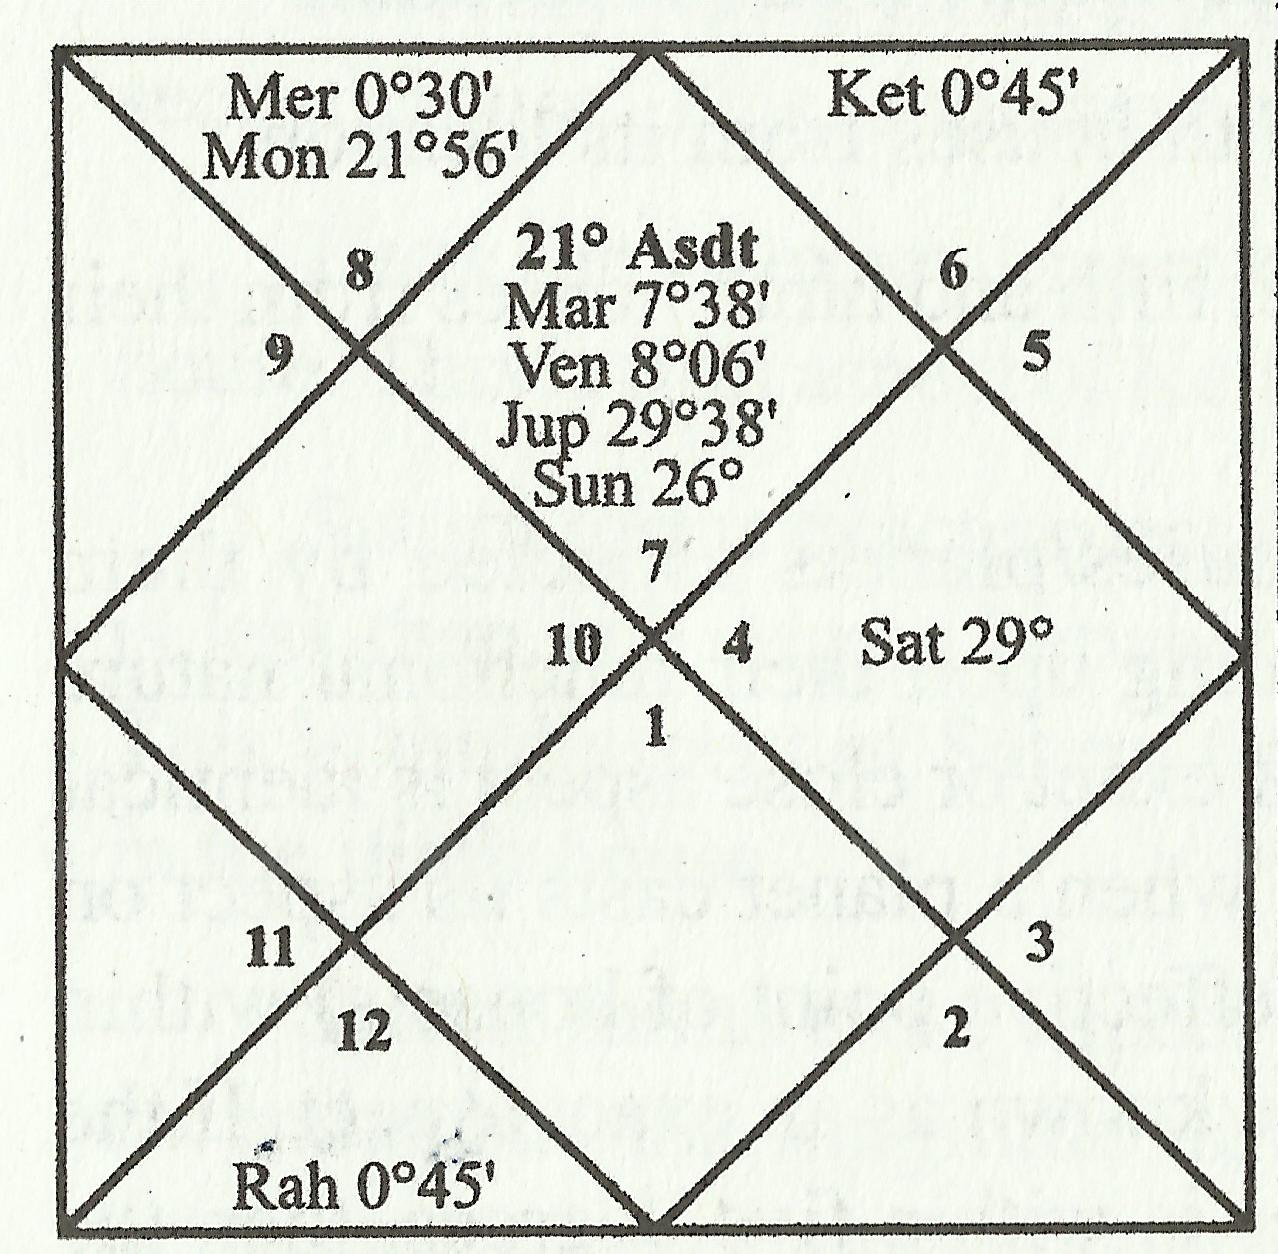 Example chart No. 1 is given for clear understanding of